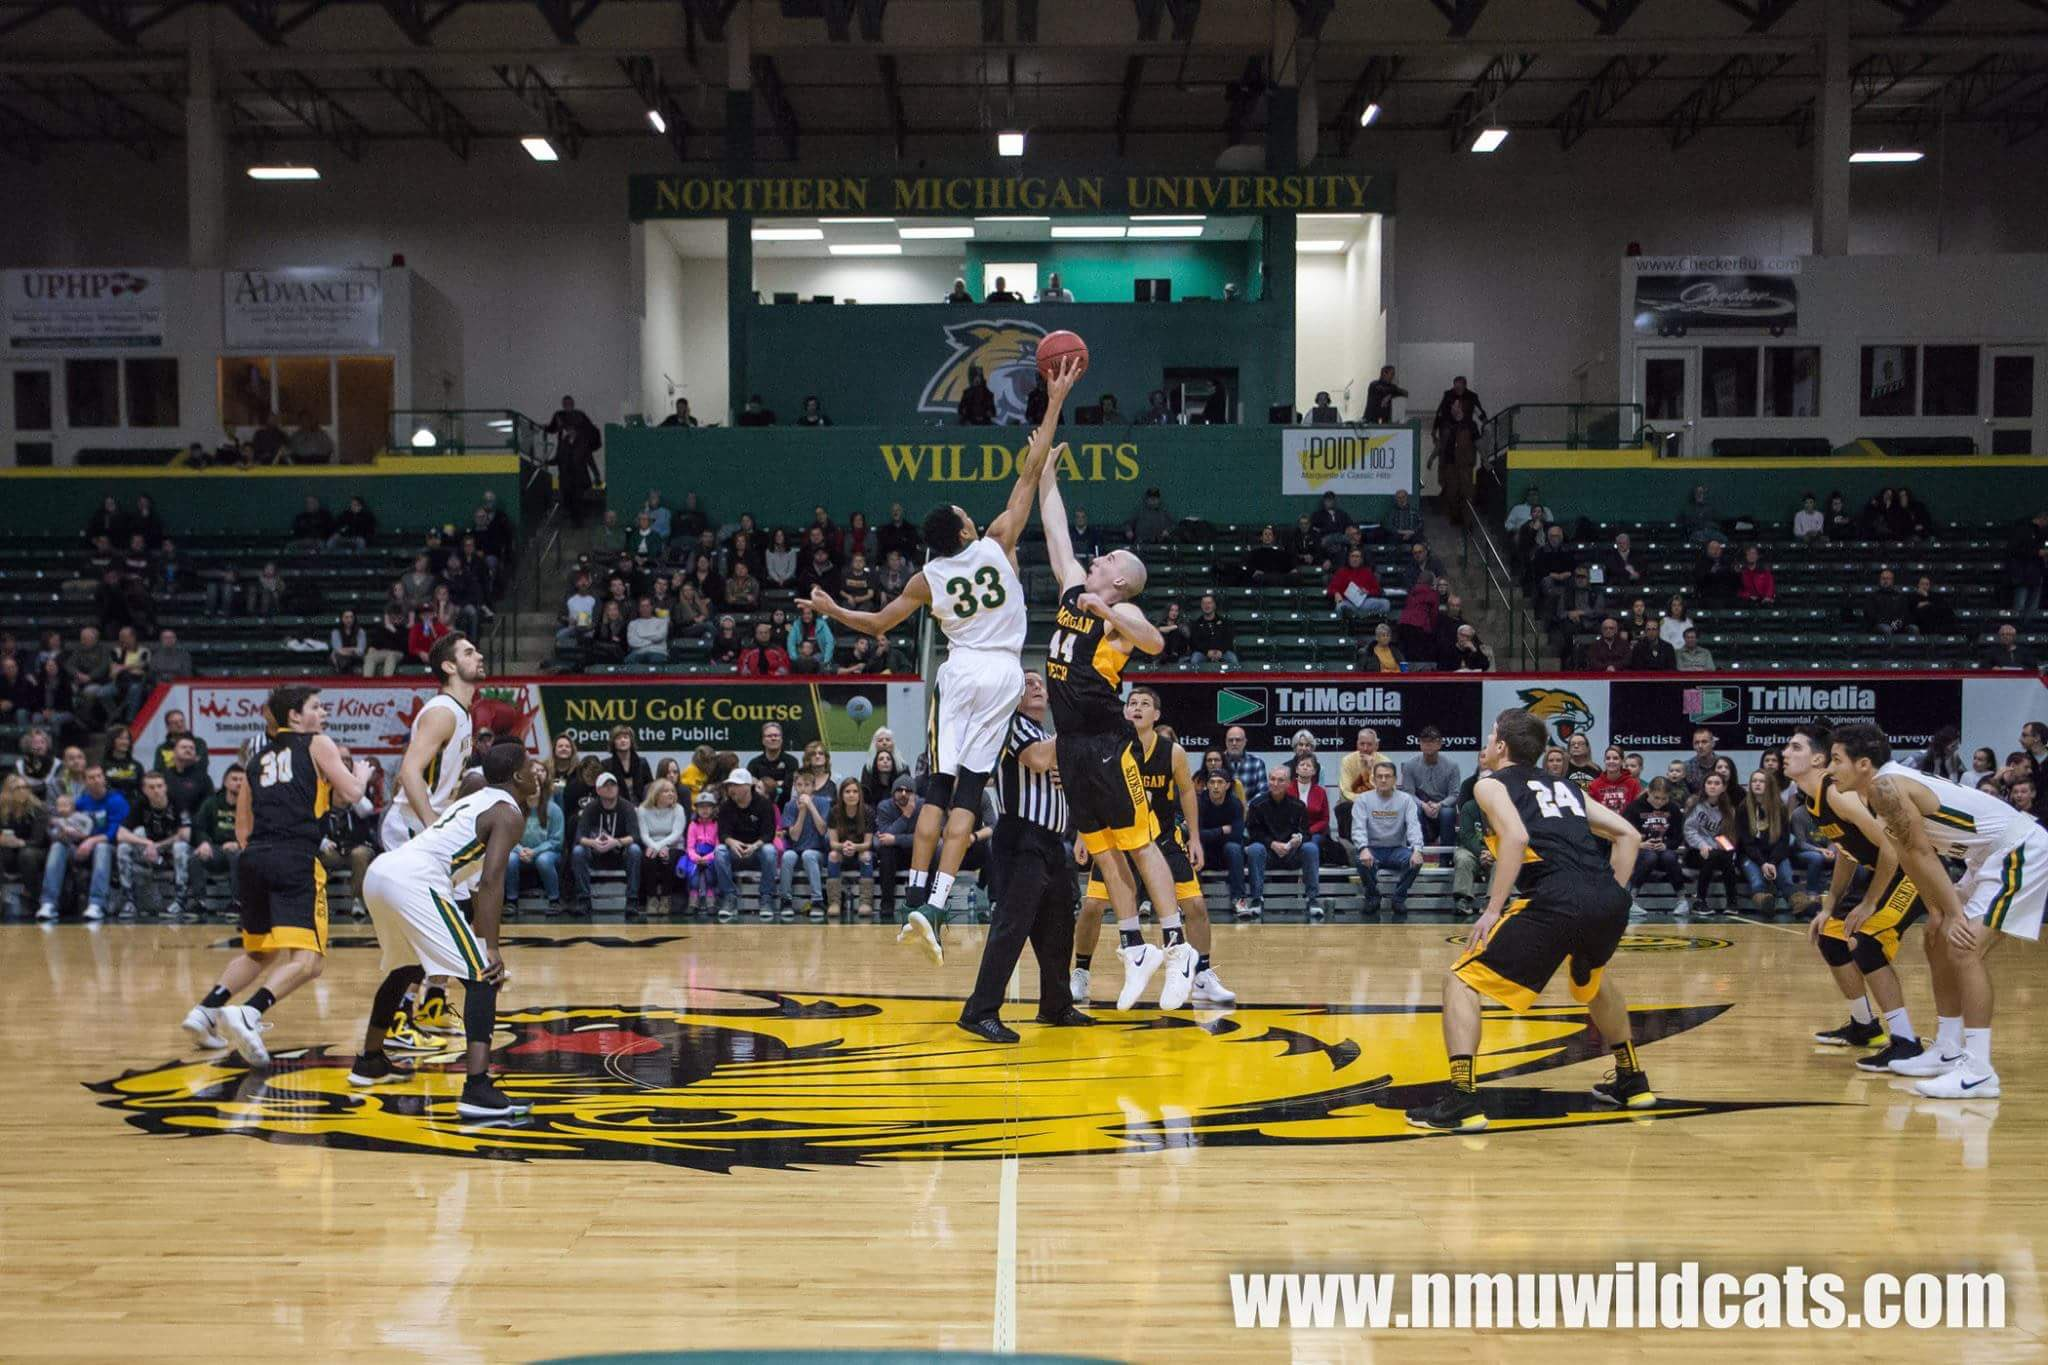 Nmu Men S Basketball On Twitter Camp Alert We Still Have Room In Our Nmu Men S Basketball Team Camp Team Camp Dates Are June 22nd 23rd 5 Games Guaranteed Register Your Team Today Commuter